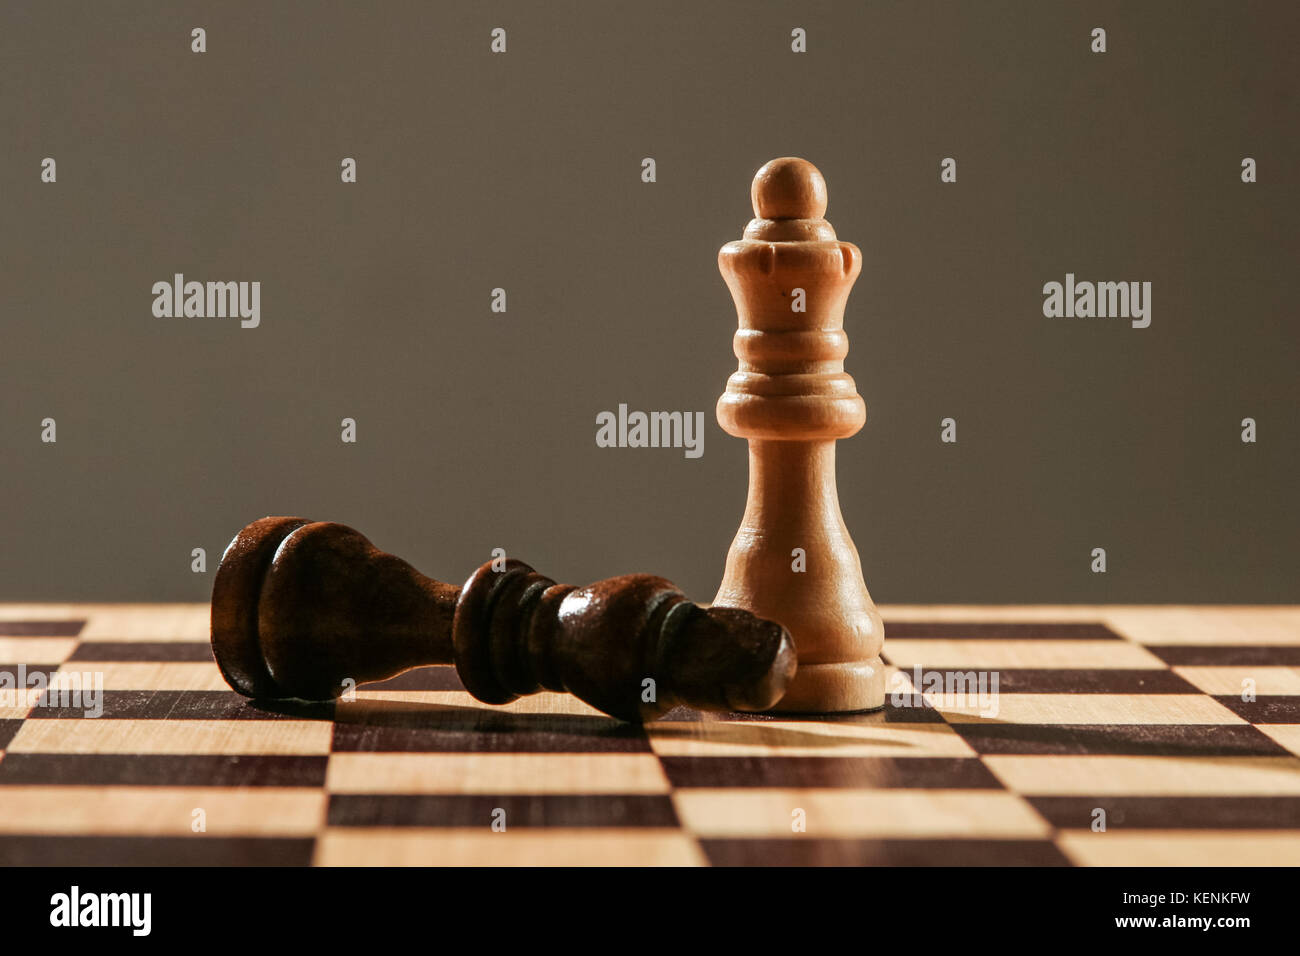 White chess queen, standing over black king, in a wooden chessboard, - Stock Image